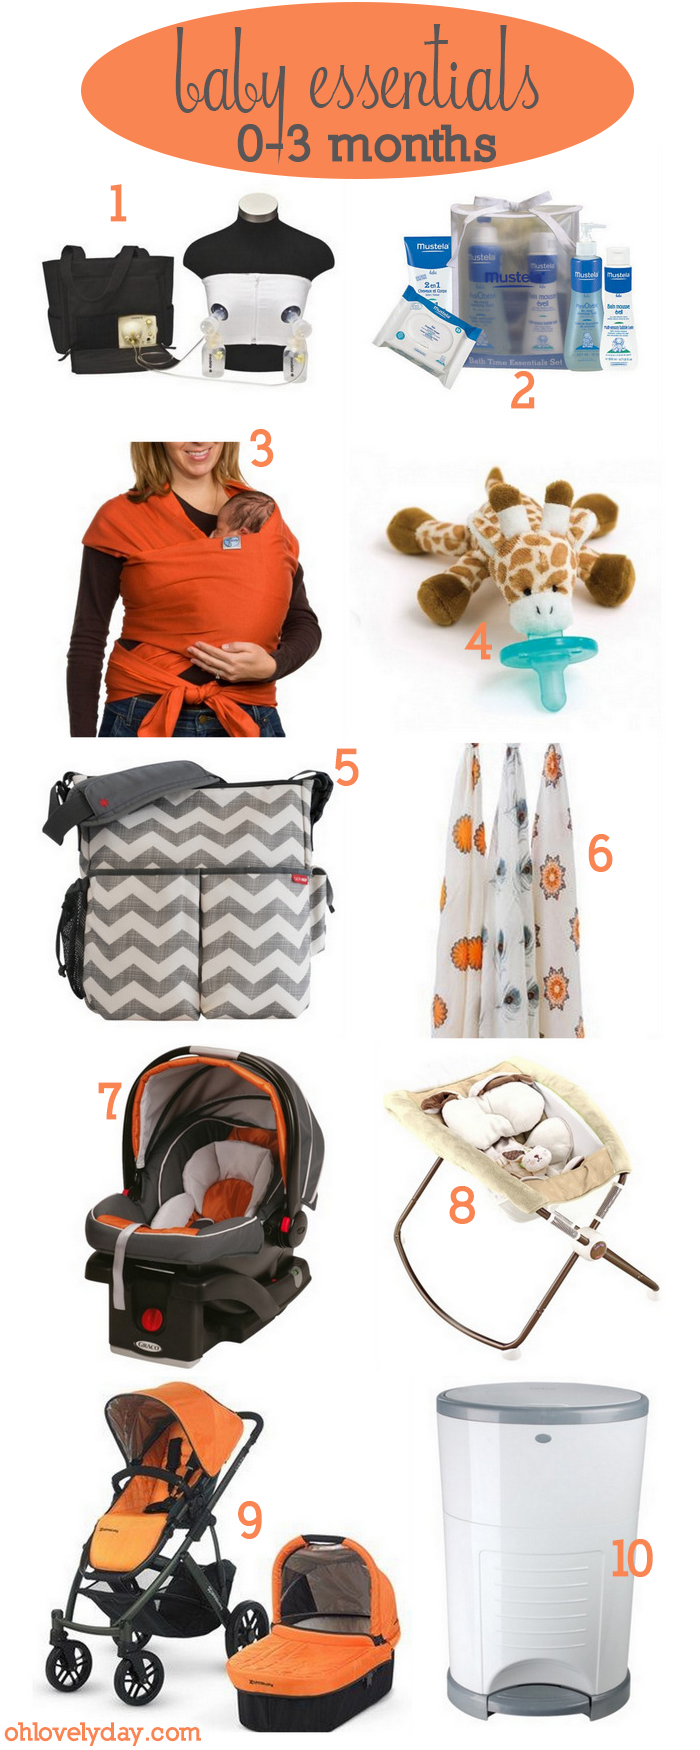 newborn baby essentials 0-3 months | Lovely Ever After on ohlovelyday.com